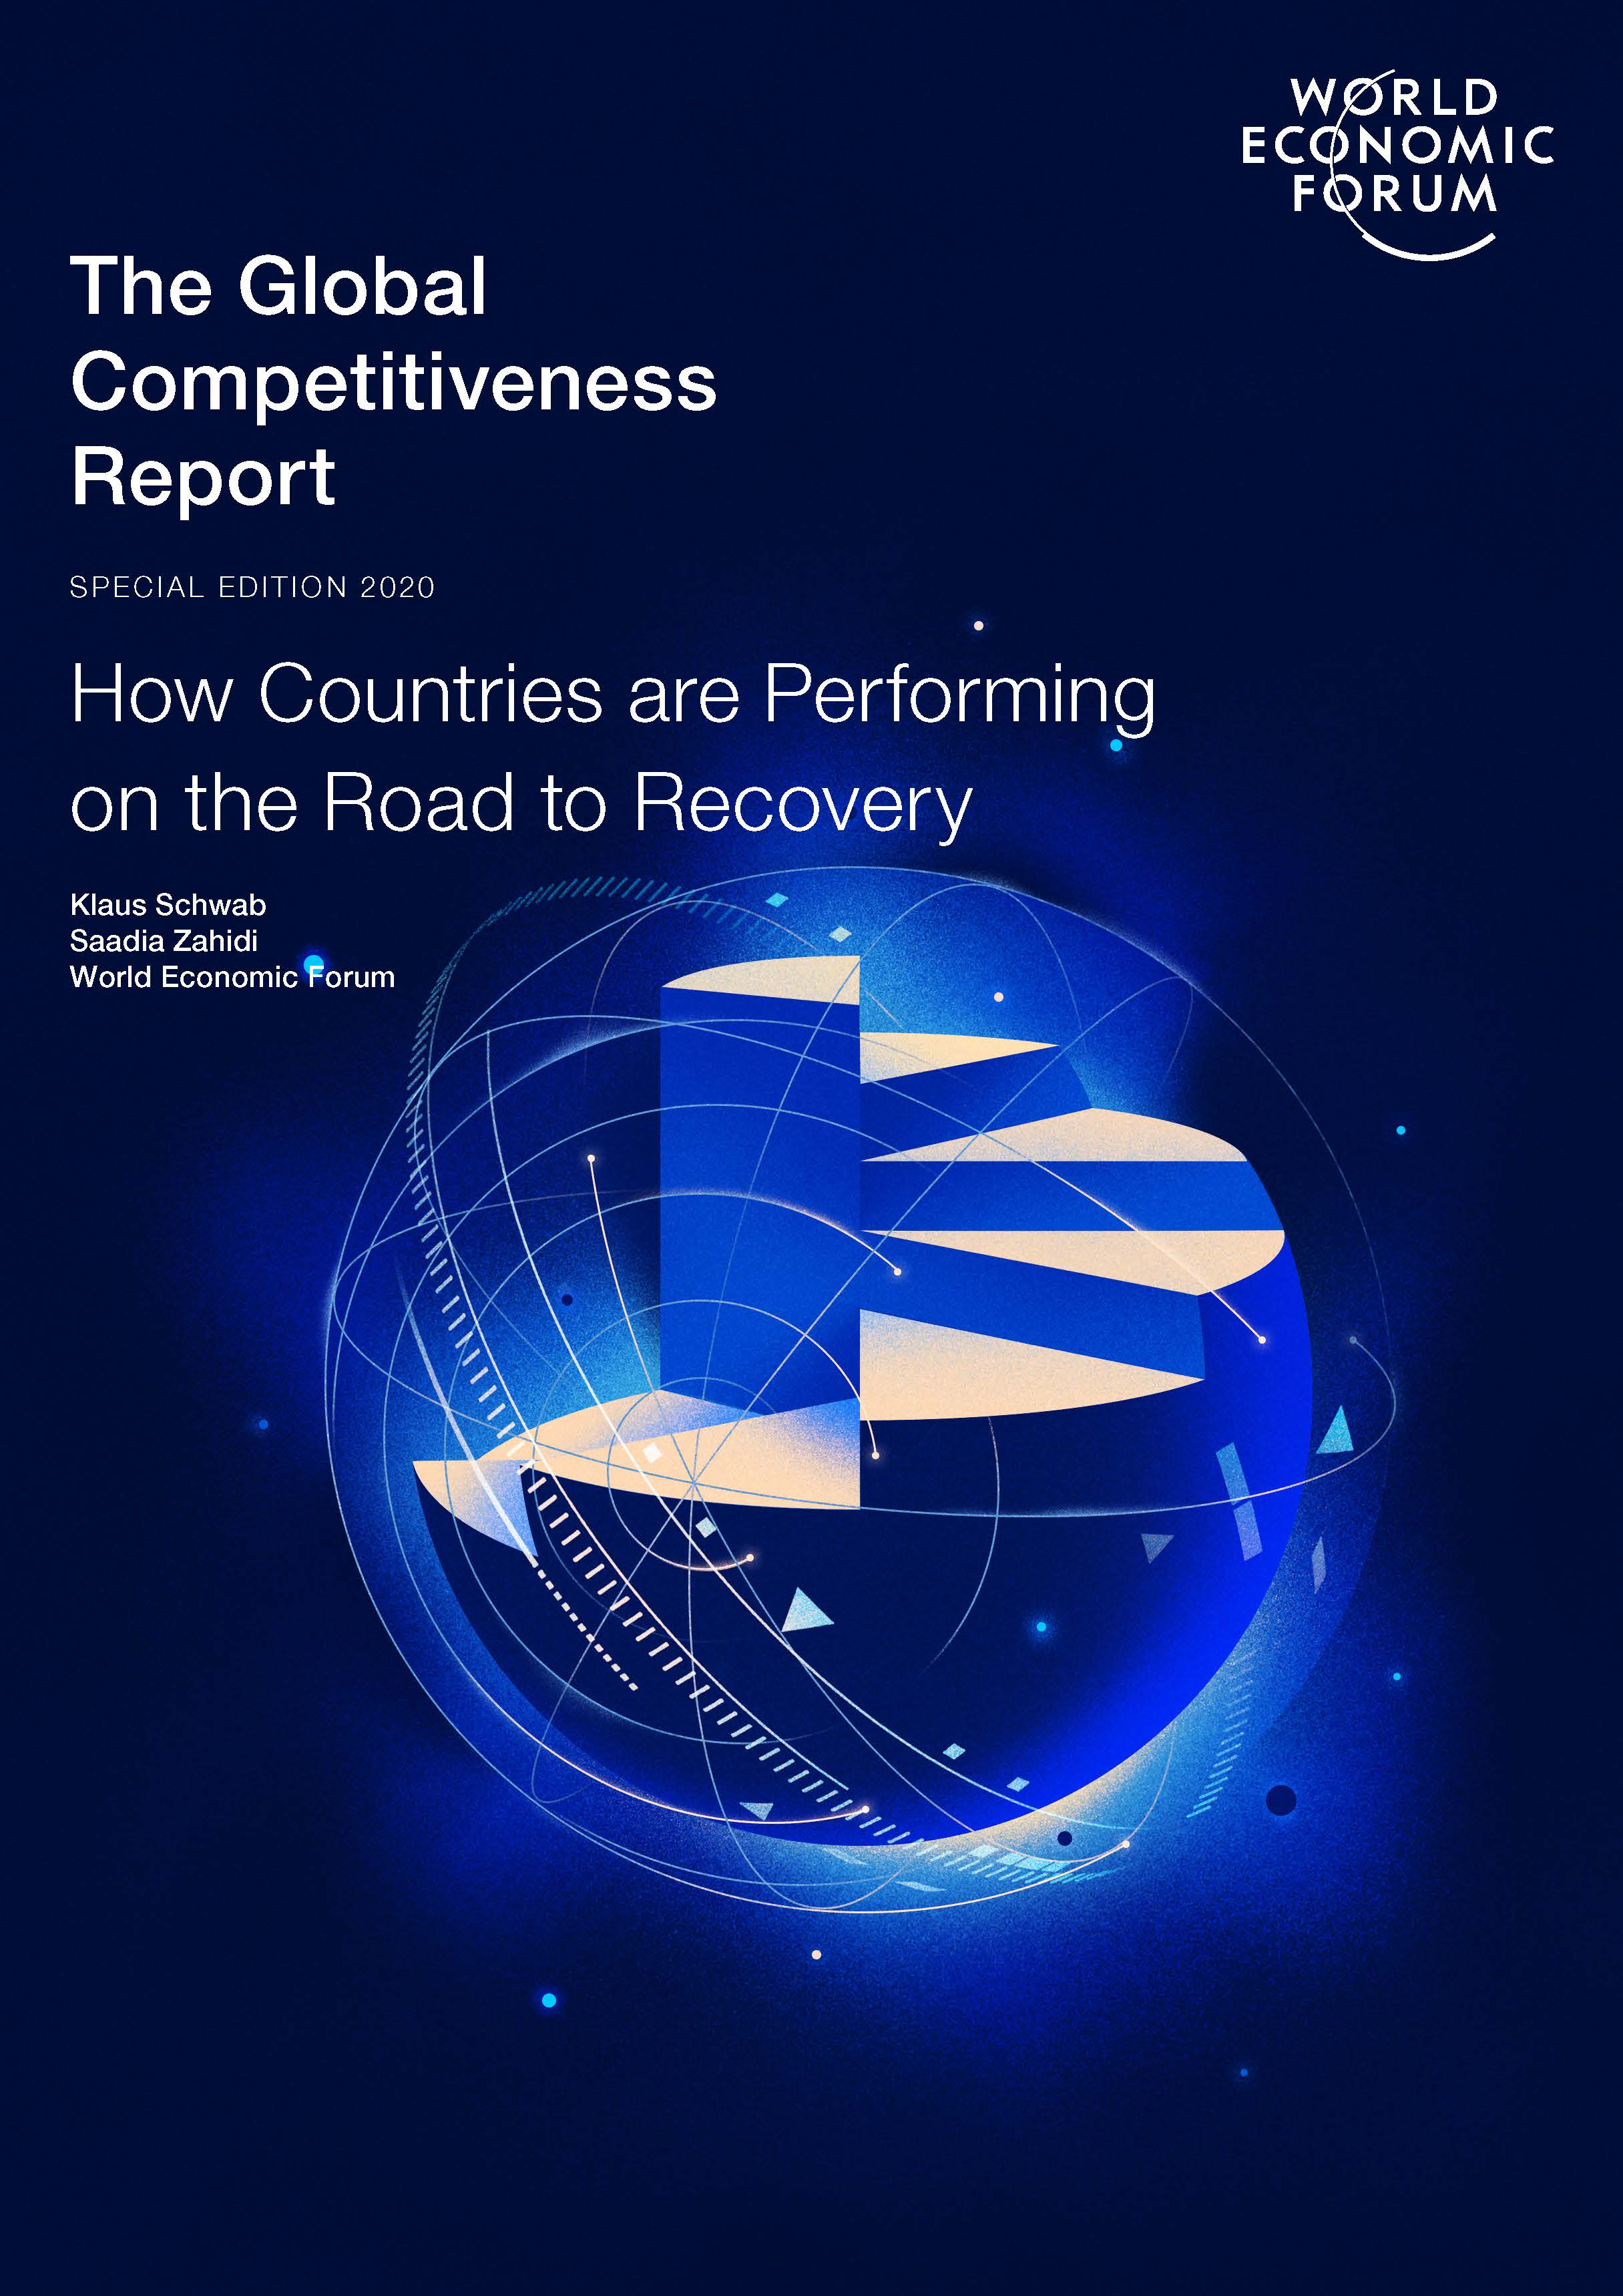 Global Competitiveness Report Special Edition 2020:How Countries are Performing on the Road to Recovery - World Economic Forum_页面_01.jpg